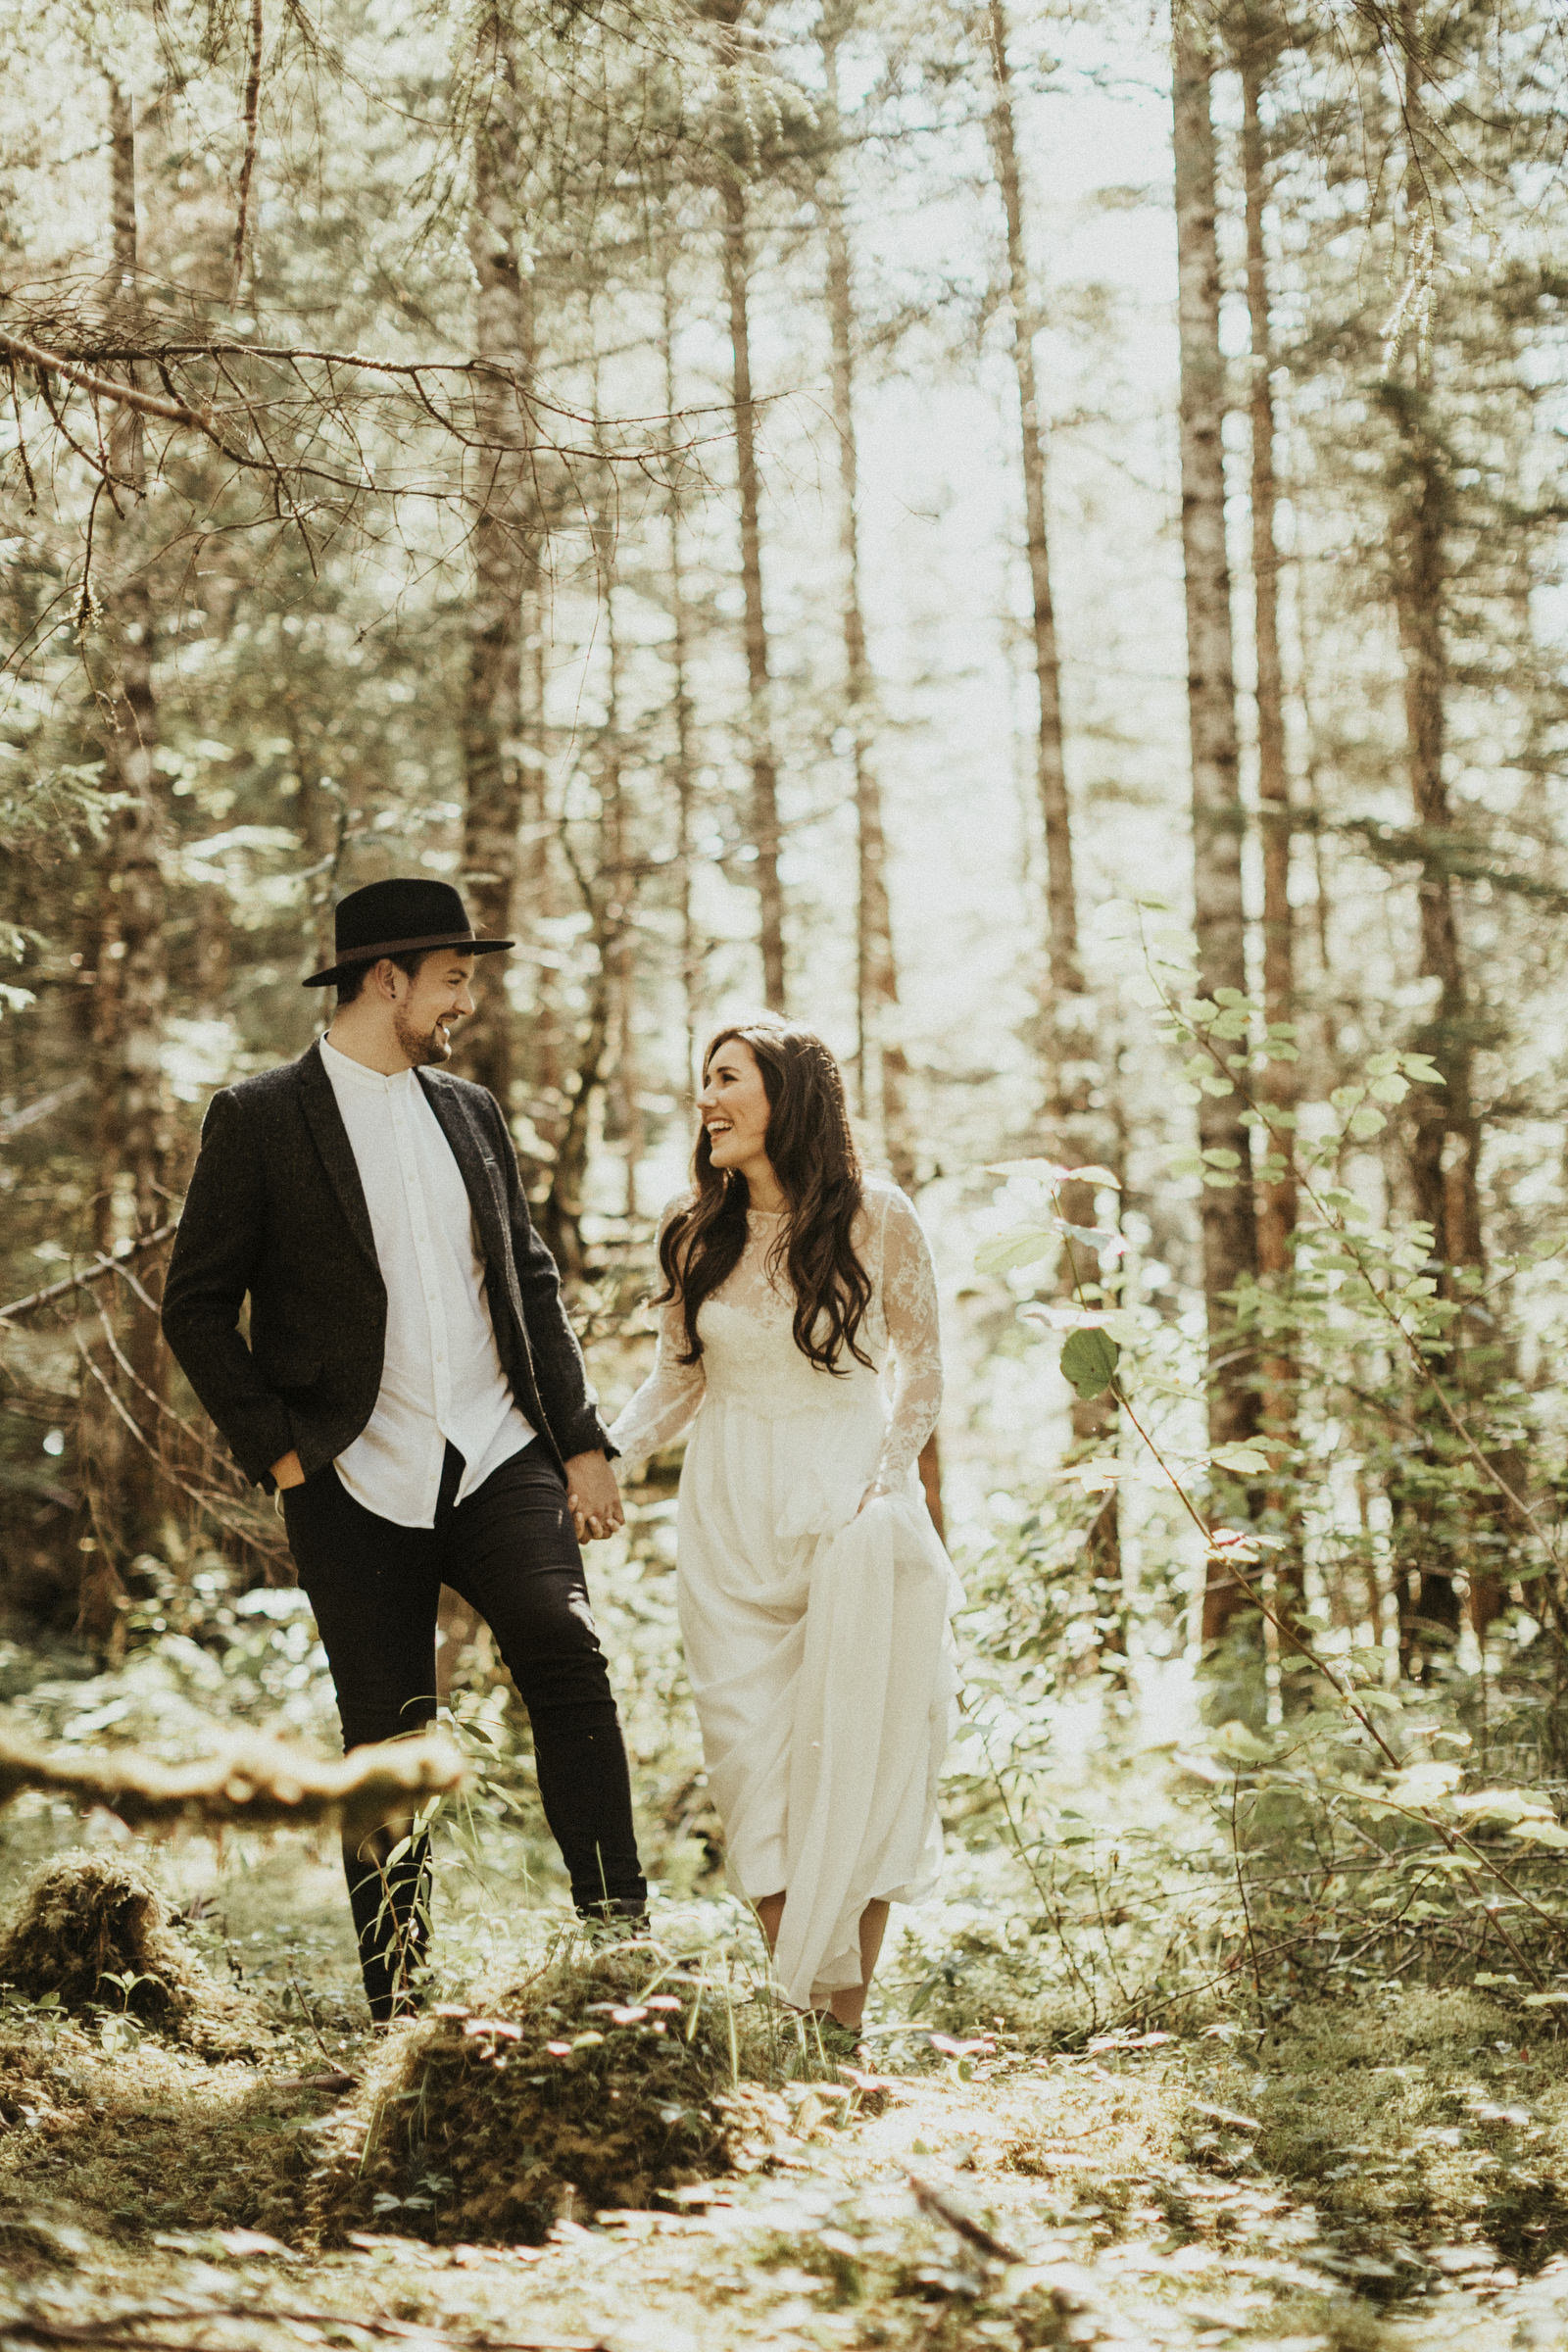 athena-and-camron-alaska-elopement-wedding-inspiration-india-earl-athena-grace-glacier-lagoon-wedding29